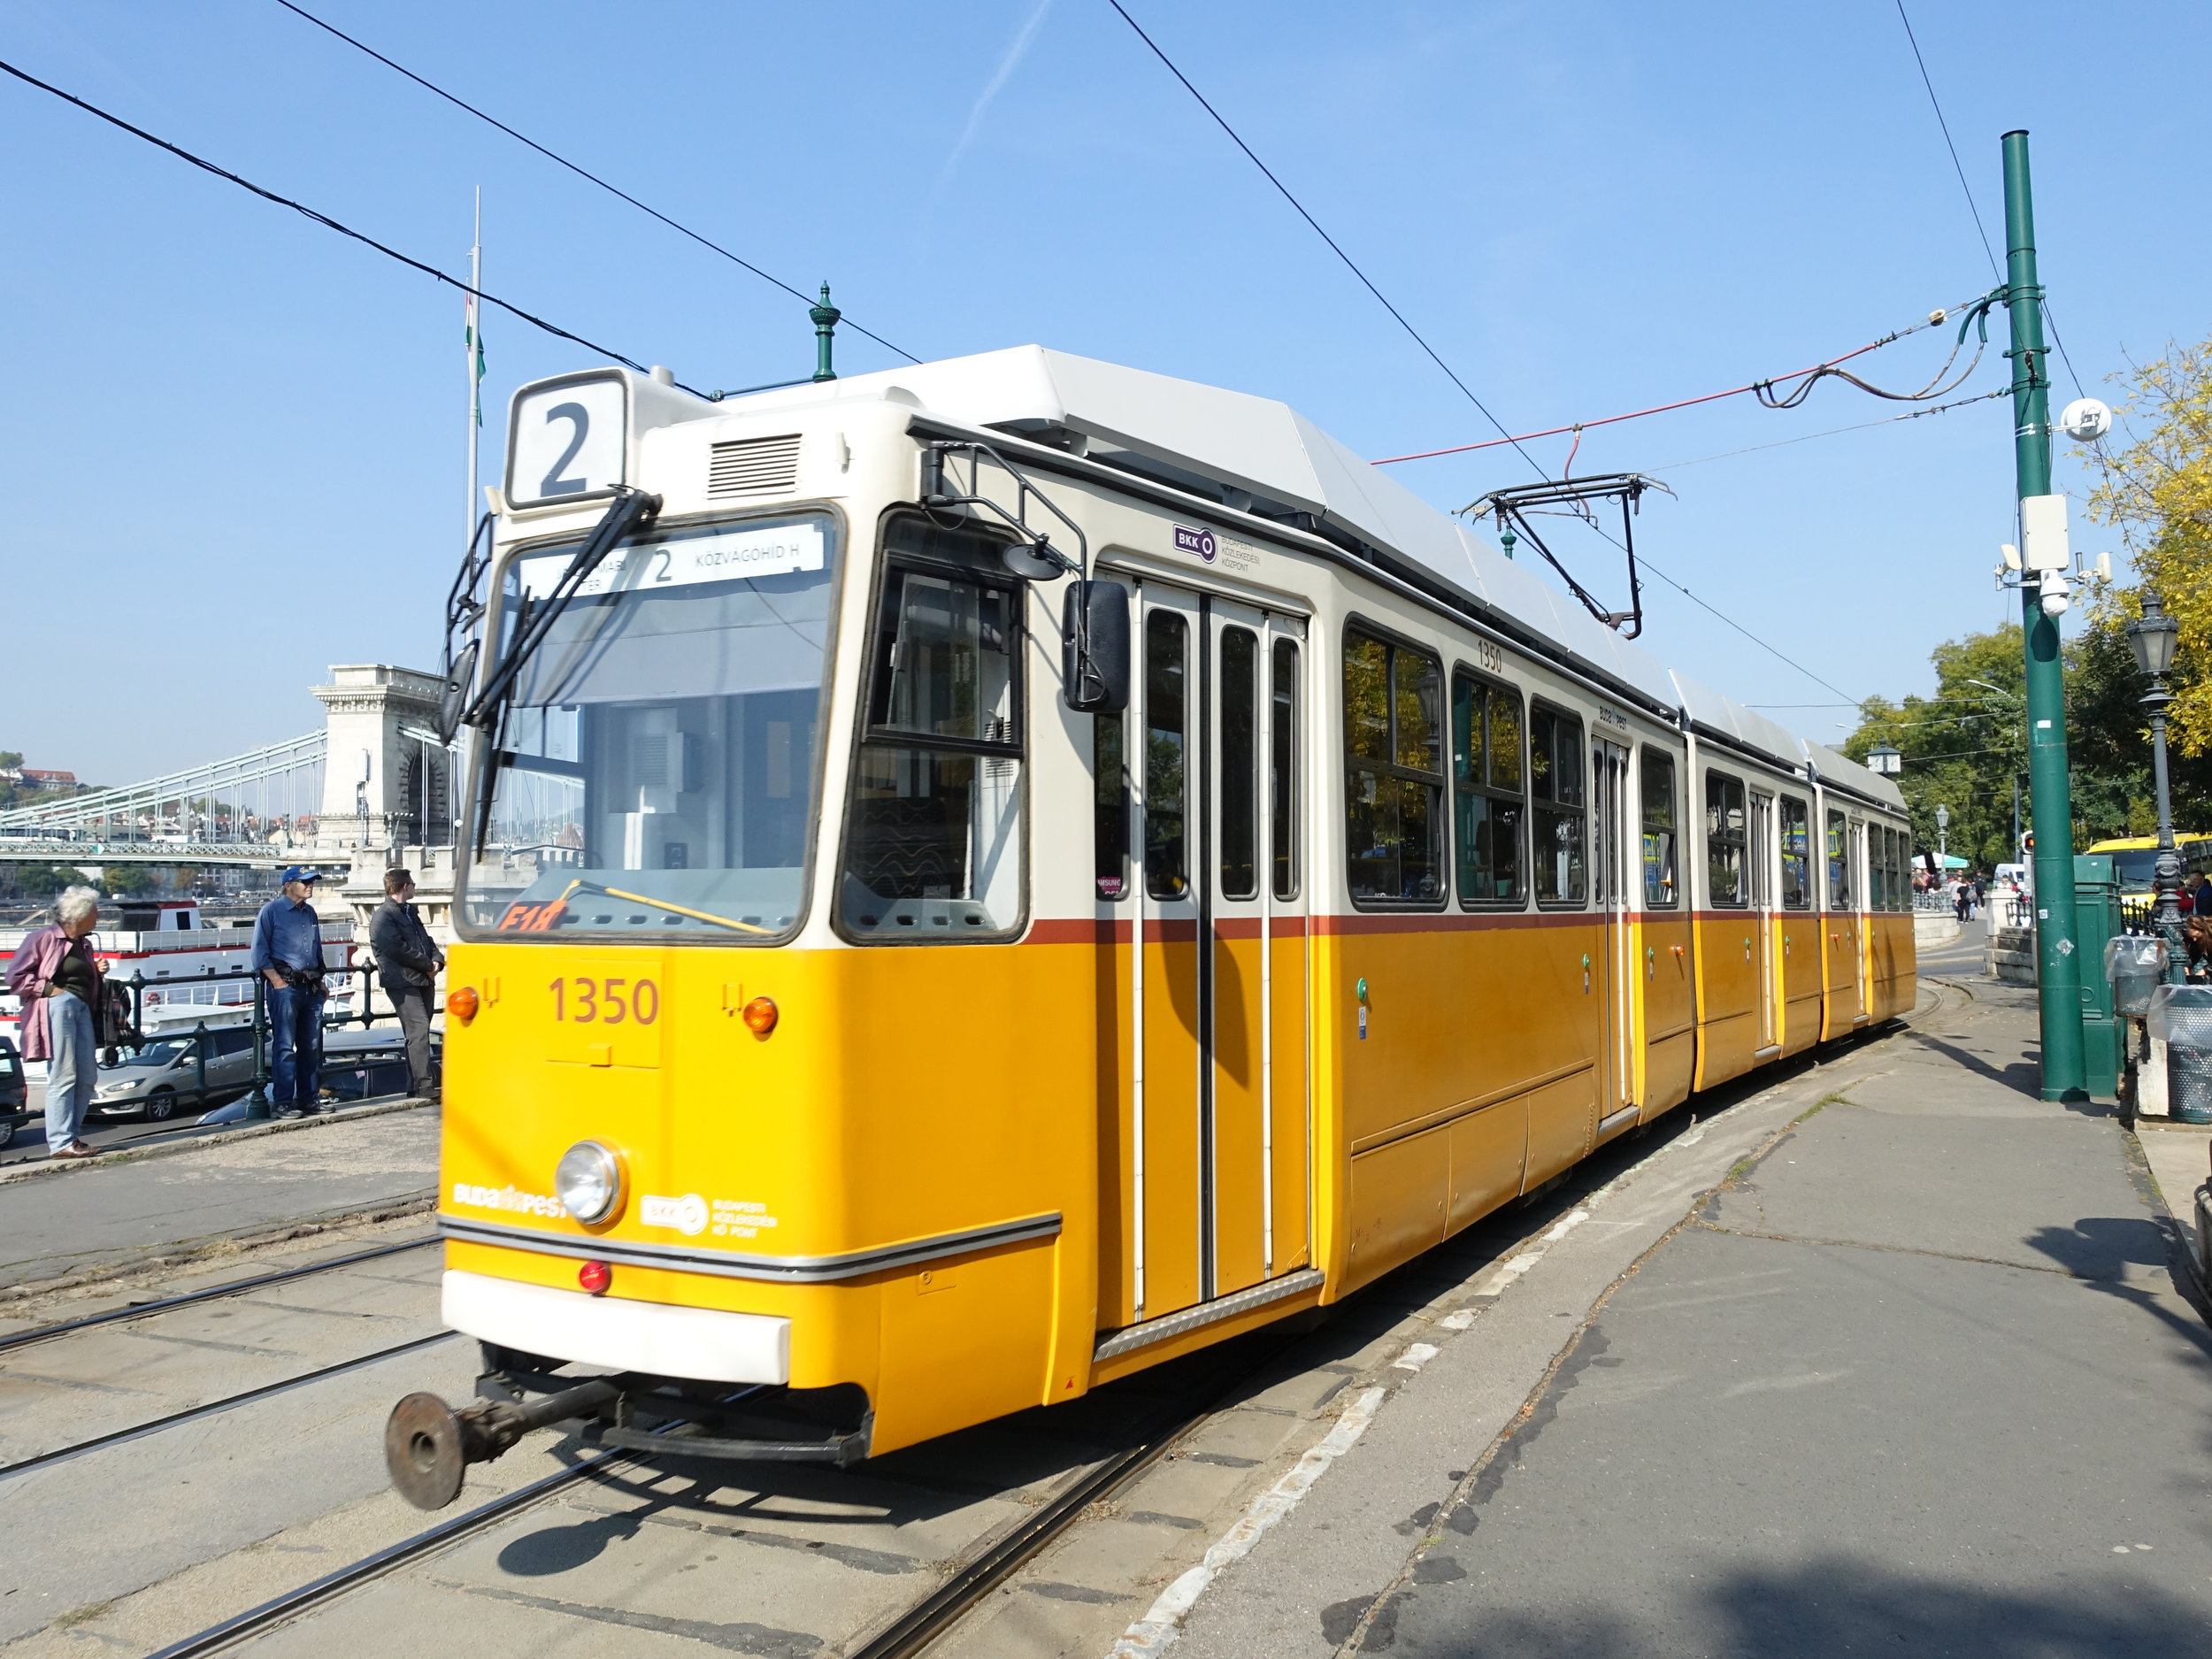 Tram No.2 - the best way to view the sights along the Danube river